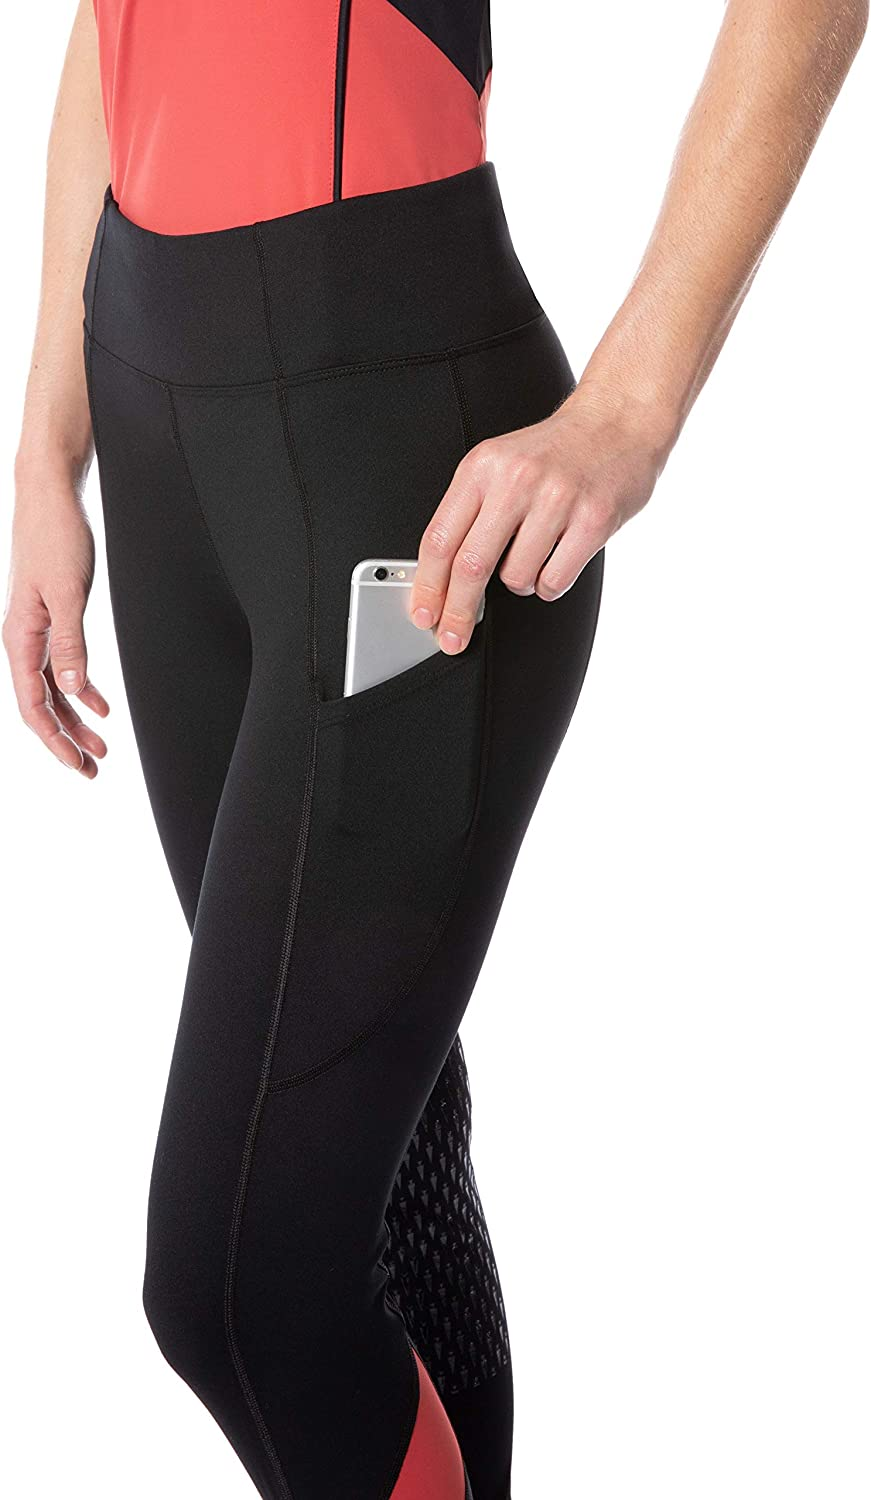 Free Style Knee Patch Pocket Tight